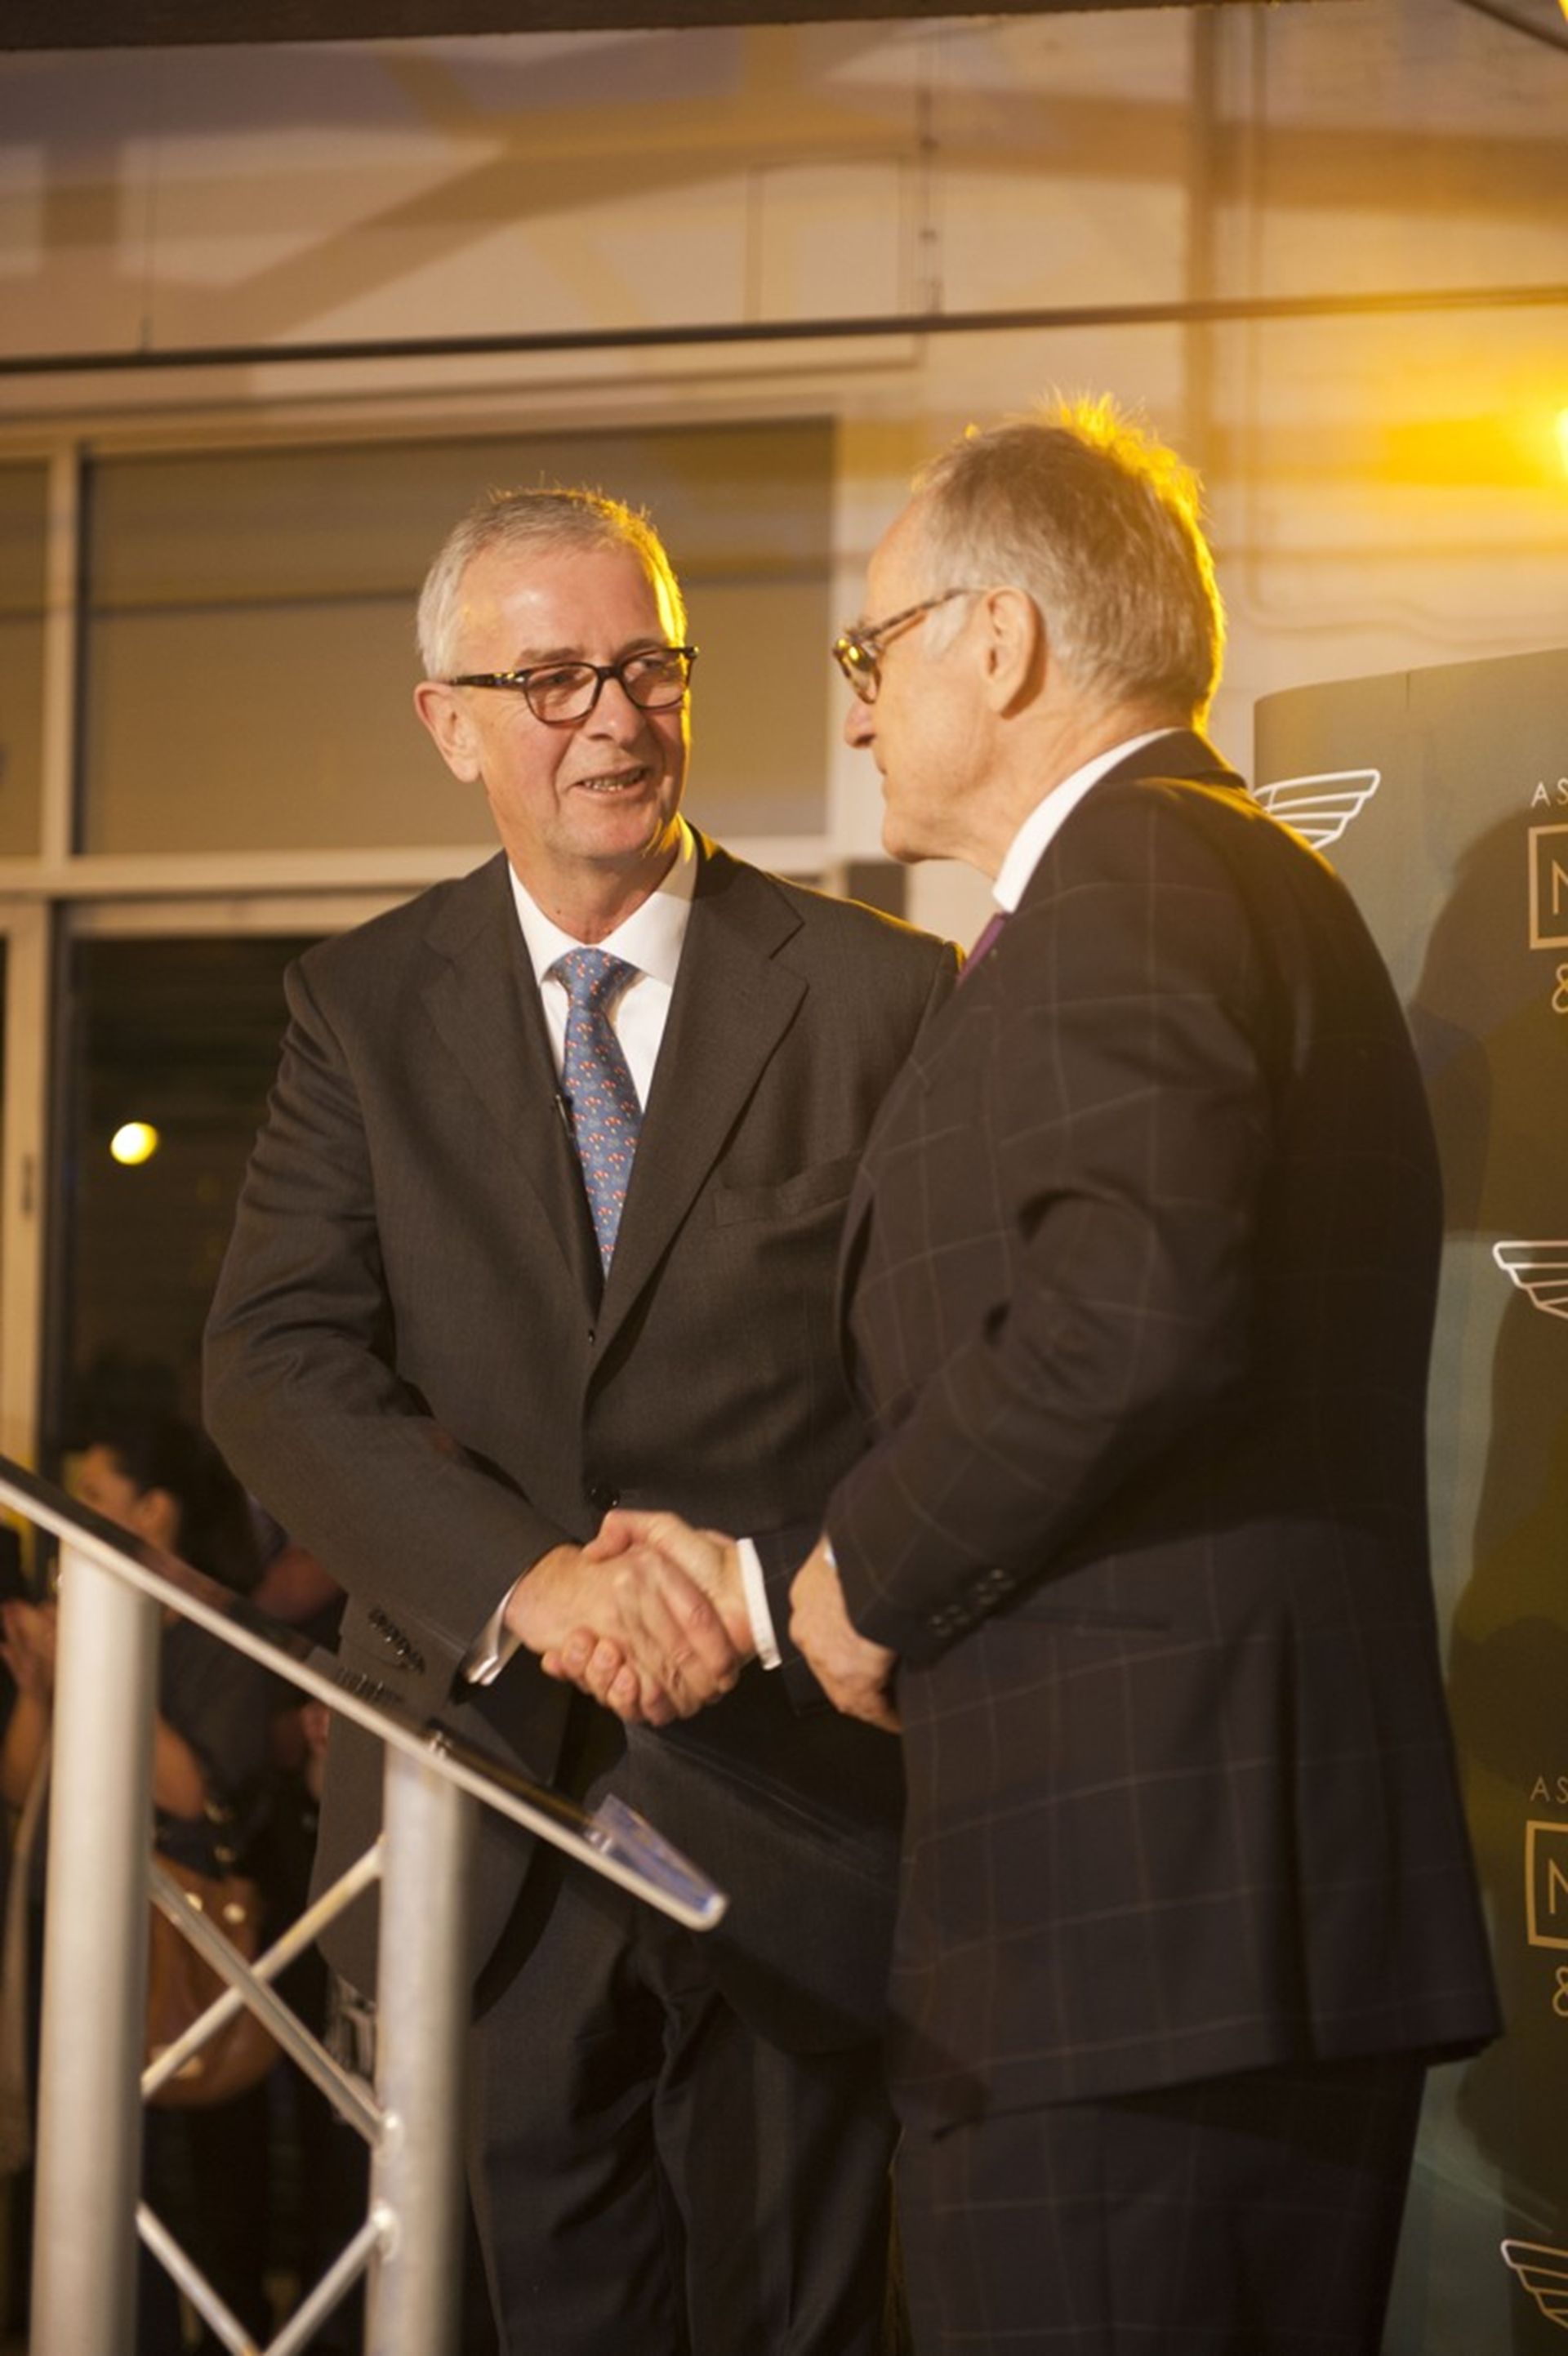 Nicholas Mee (left) shakes hands with Dr. Ulrich Bez